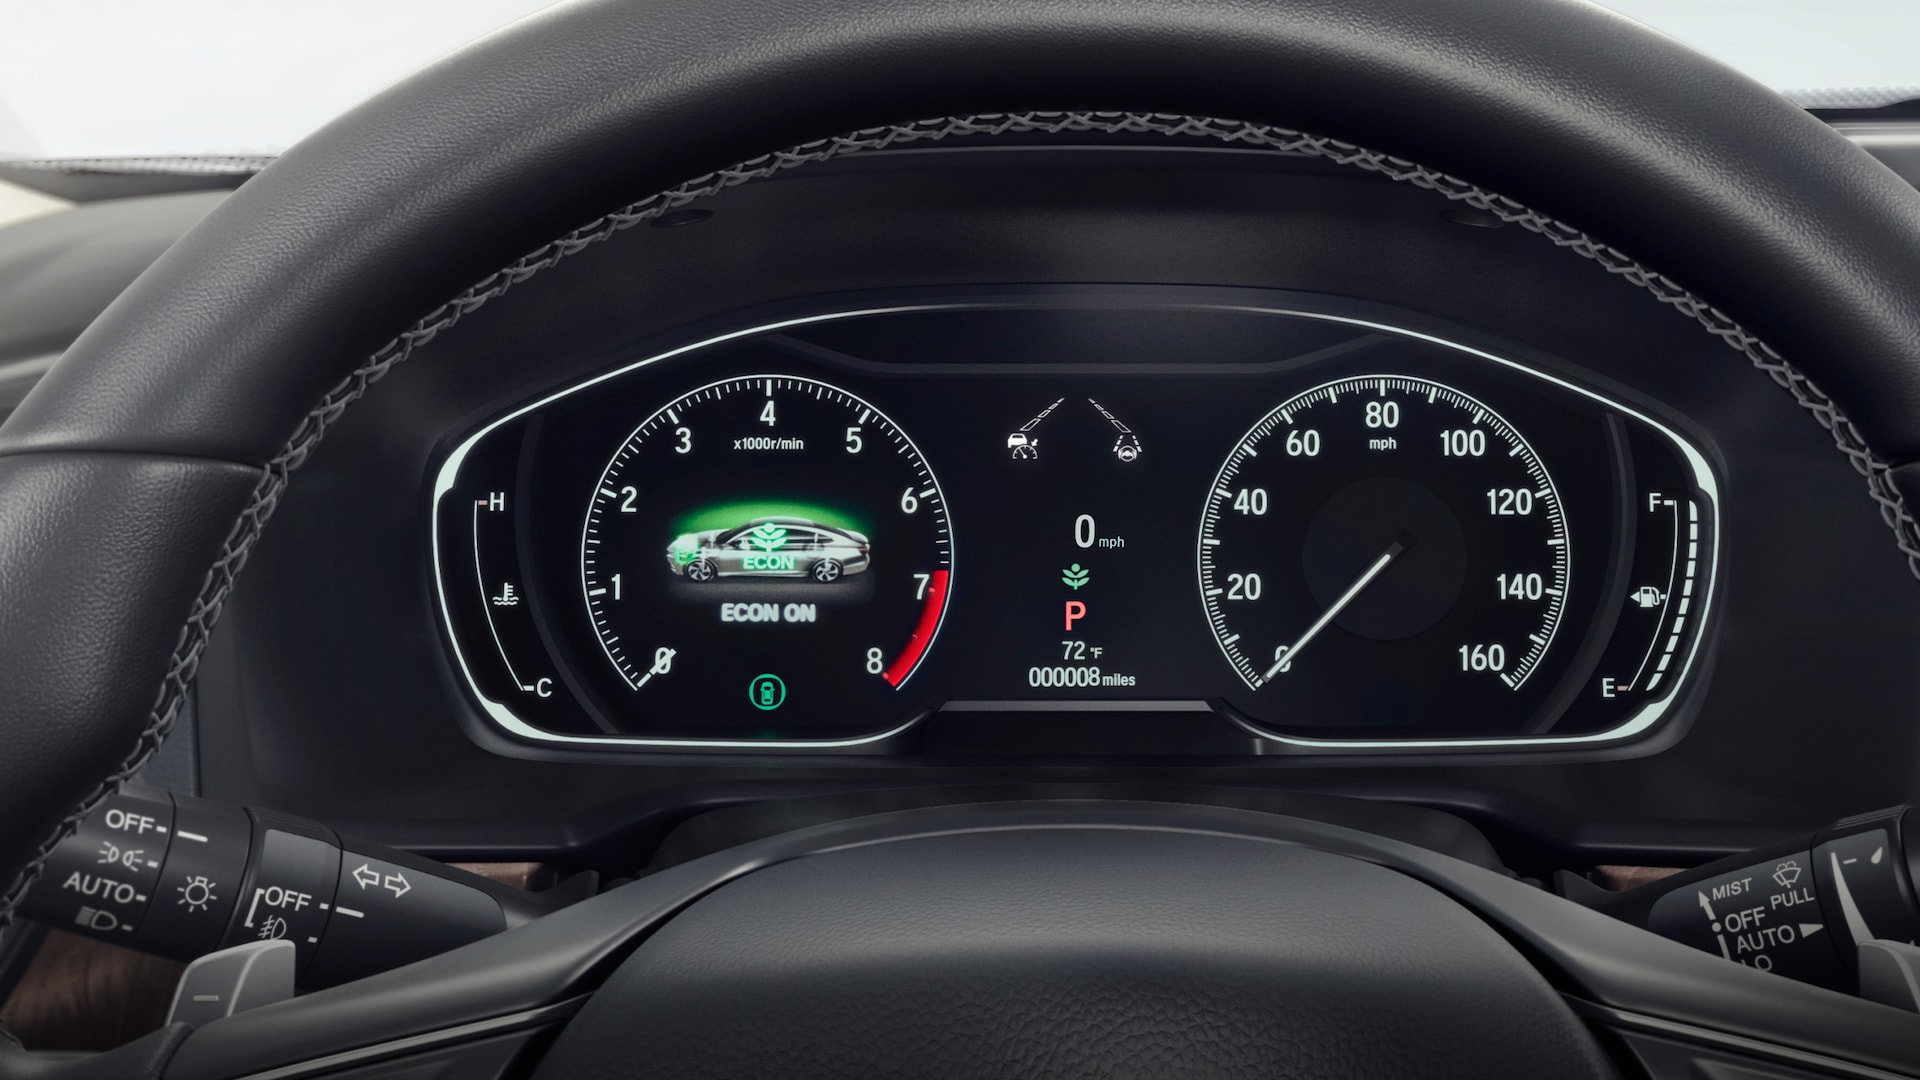 Full-color 7-inch Driver Information Interface detail in the 2021 Honda Accord Touring 2.0T.